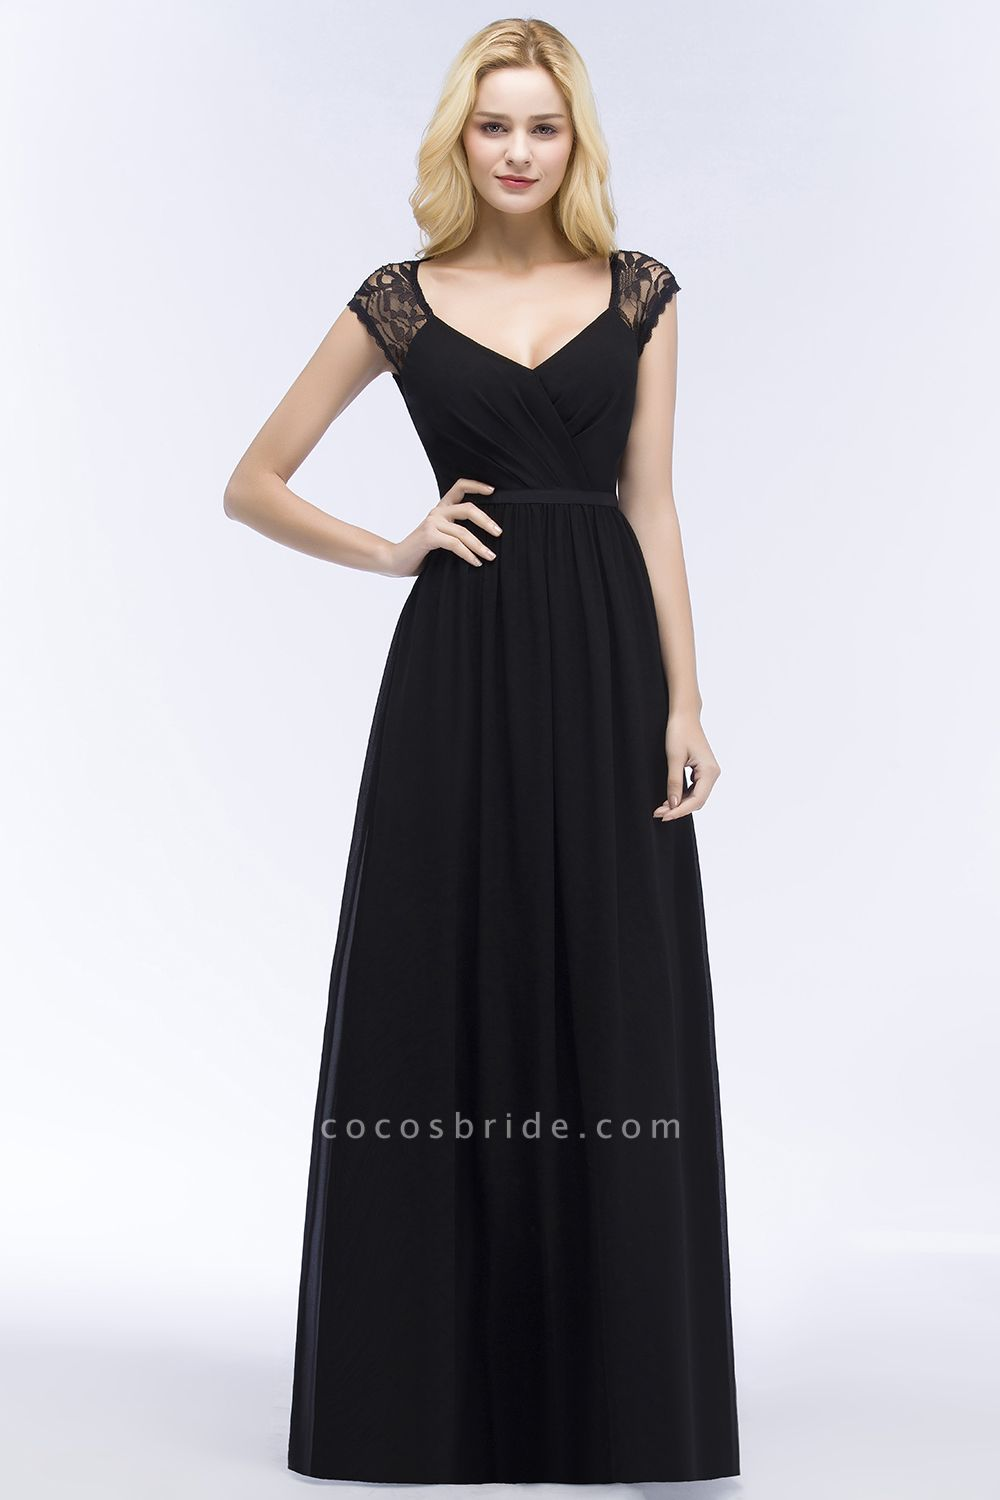 Elegant Mermaid Lace V-Neck Sleeveless Floor-Length Bridesmaid Dresses with Sash